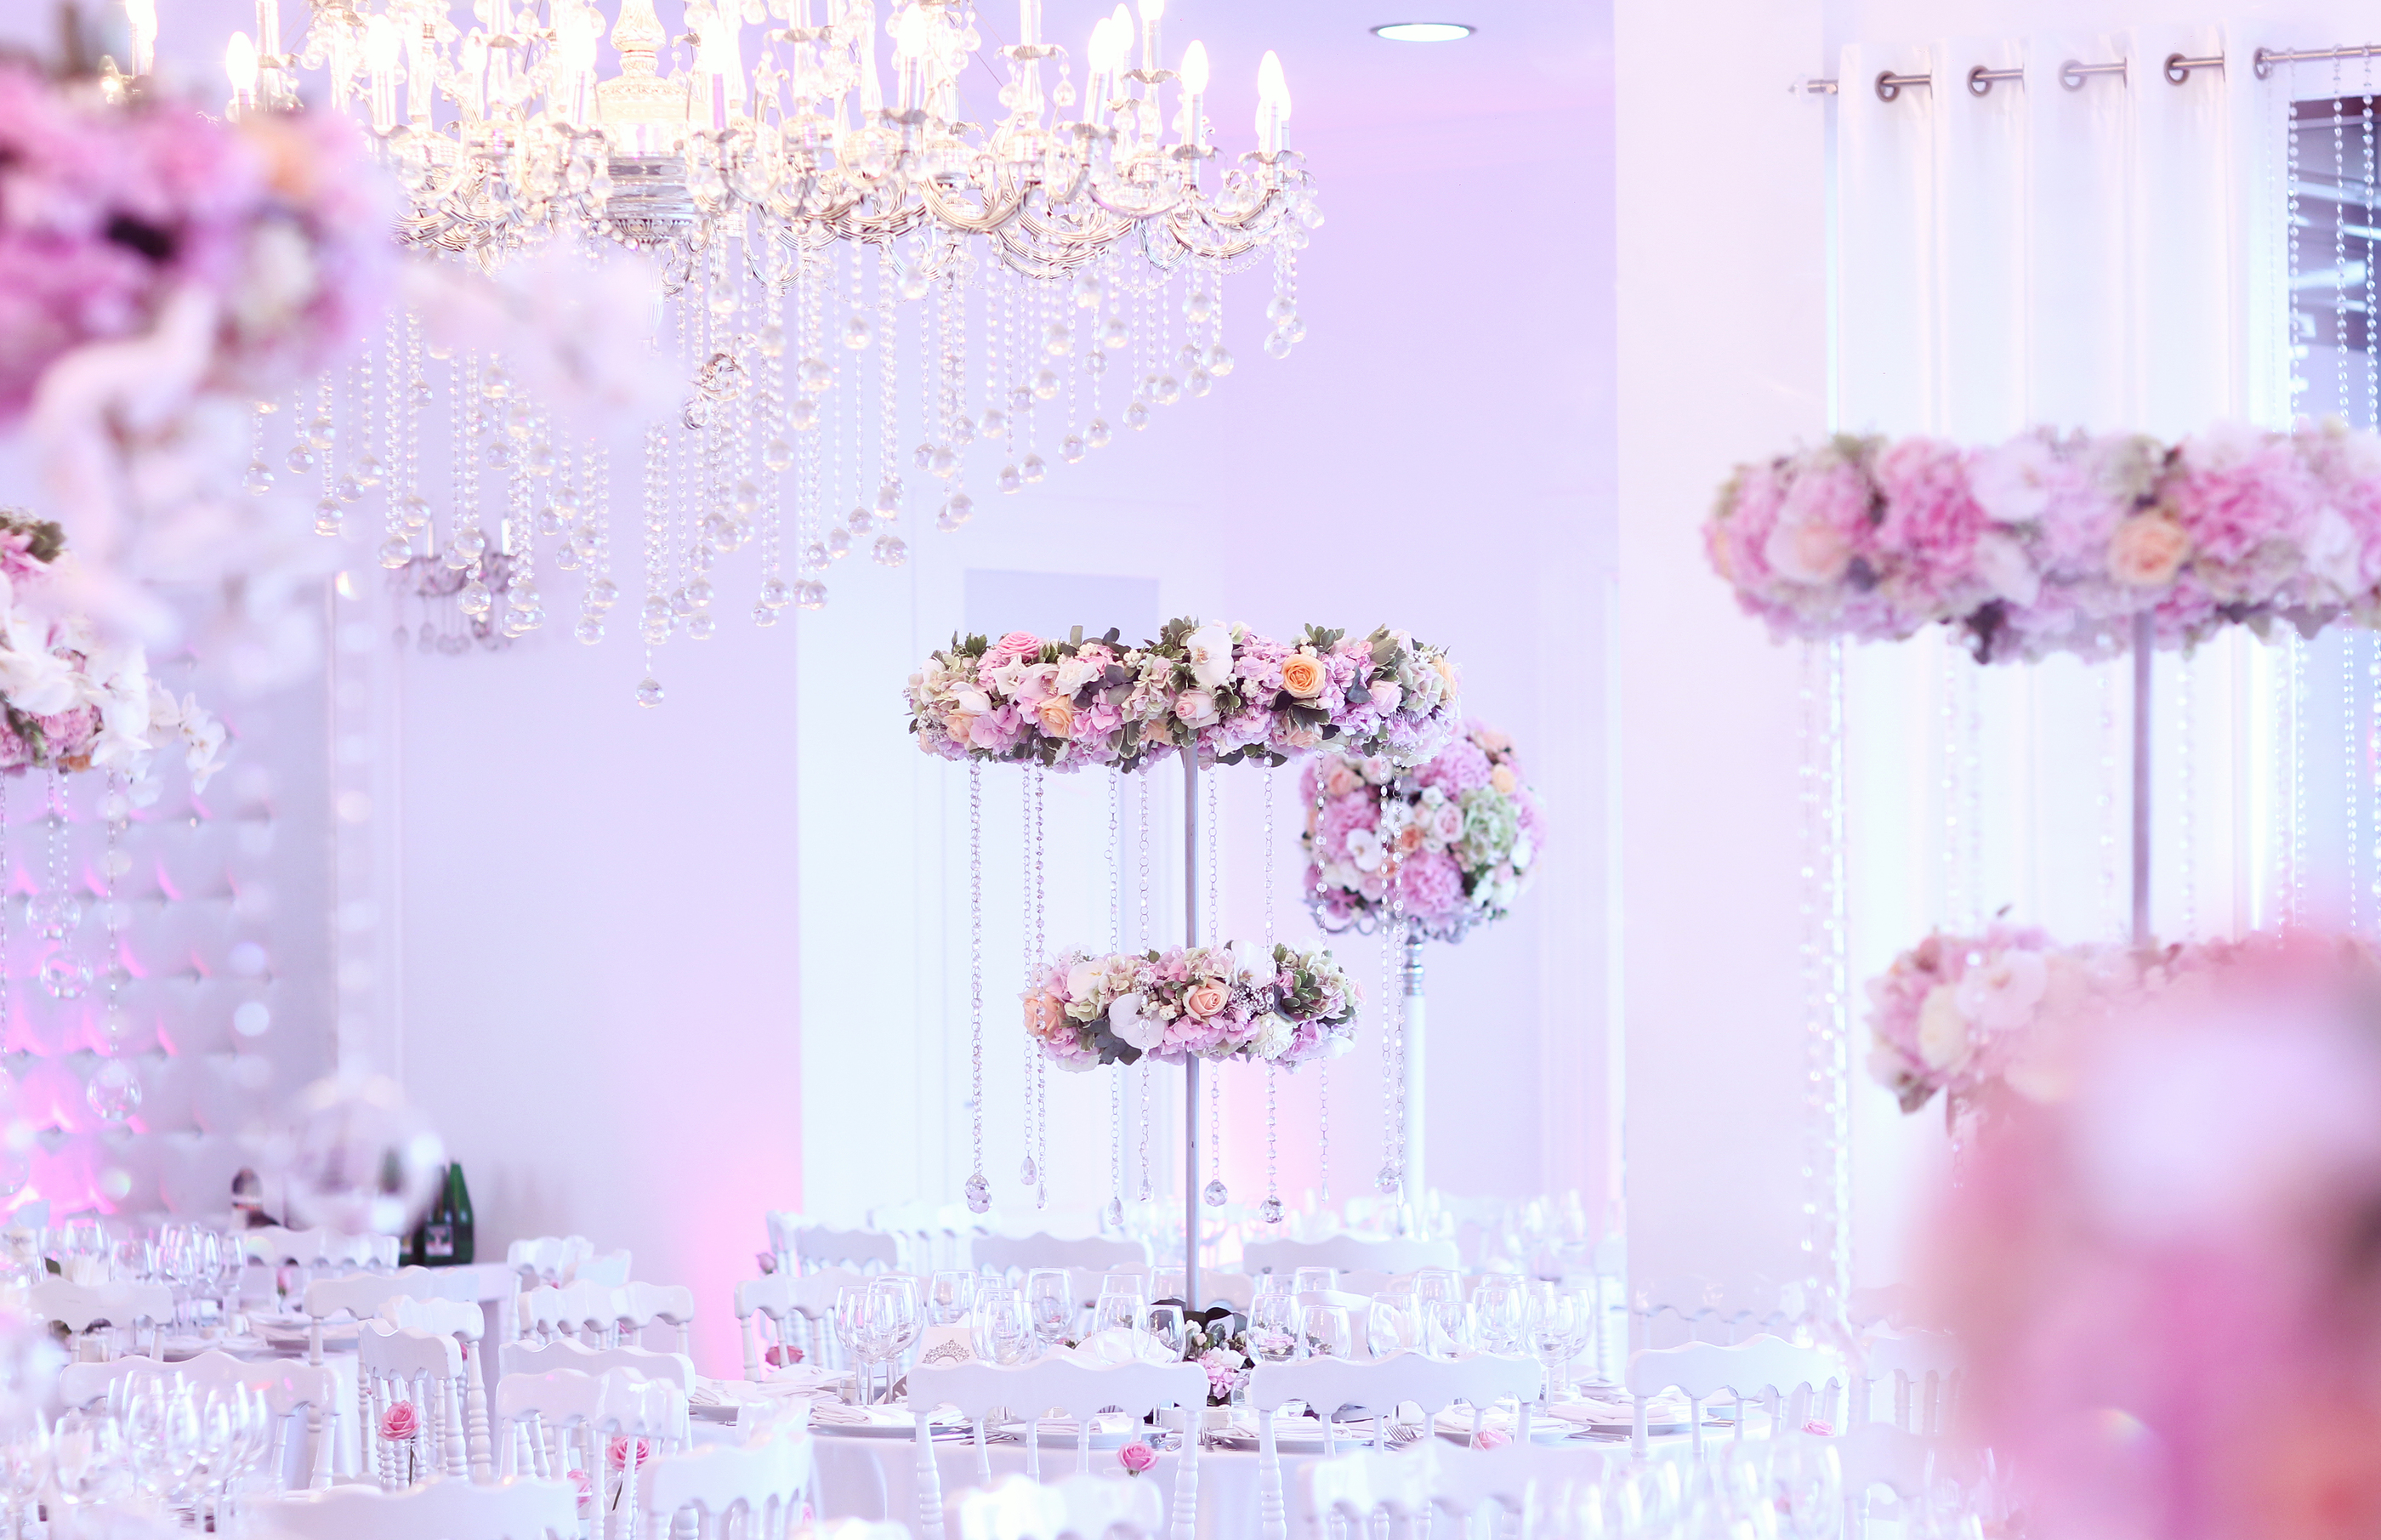 Beautiful Flower Decorations On Elegant Table With Crystal Chandelier